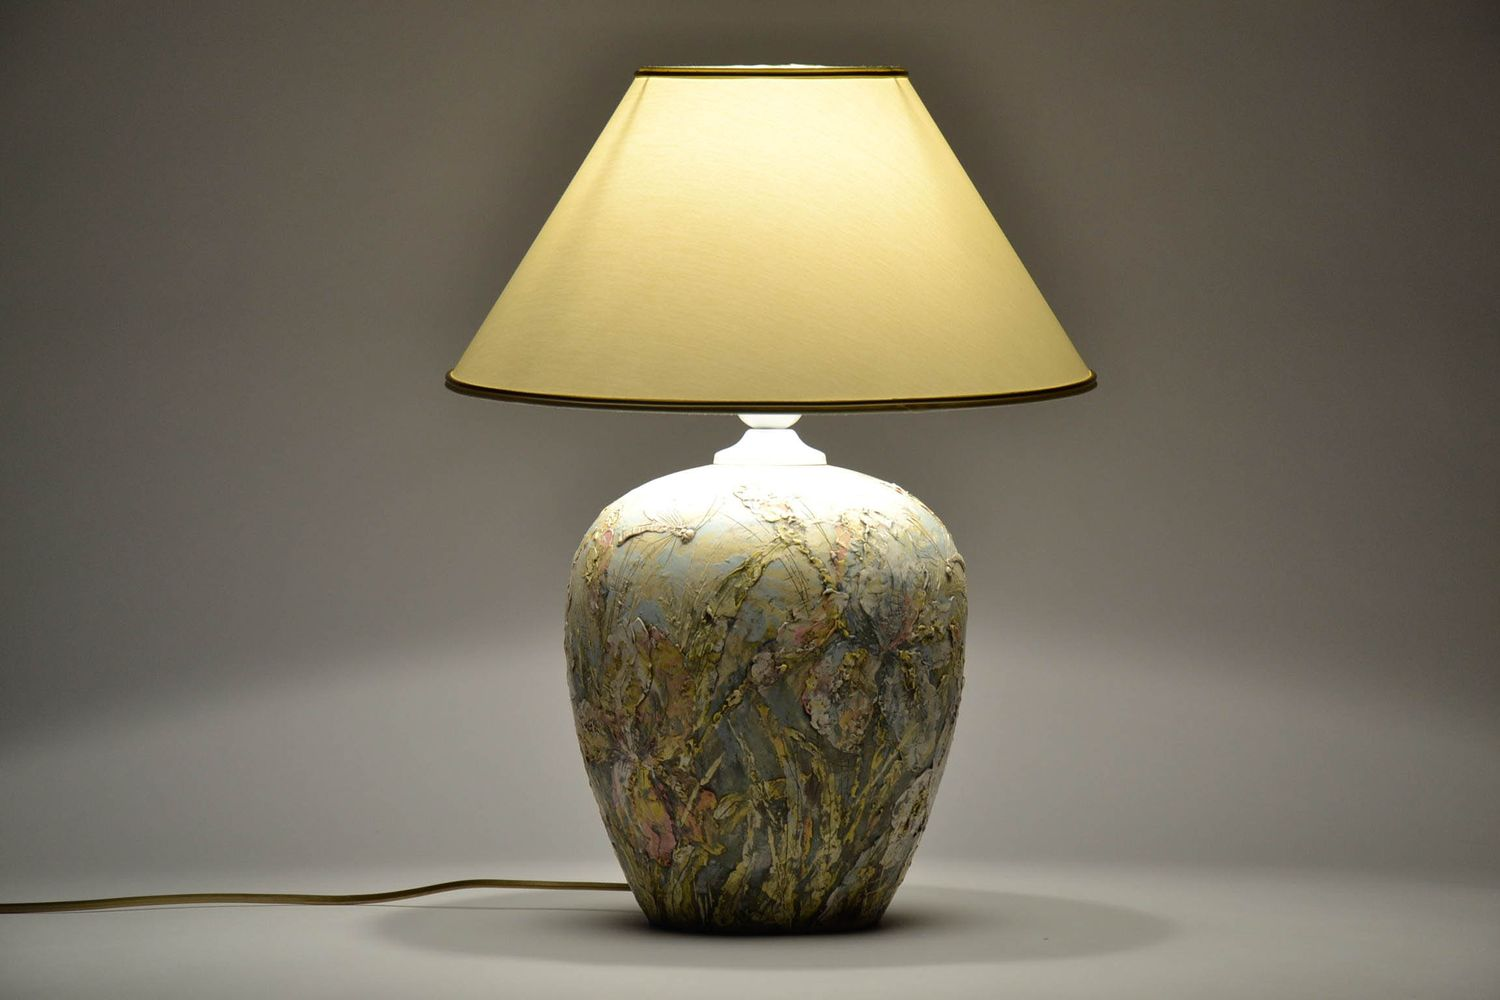 lighting Ceramic night lamp